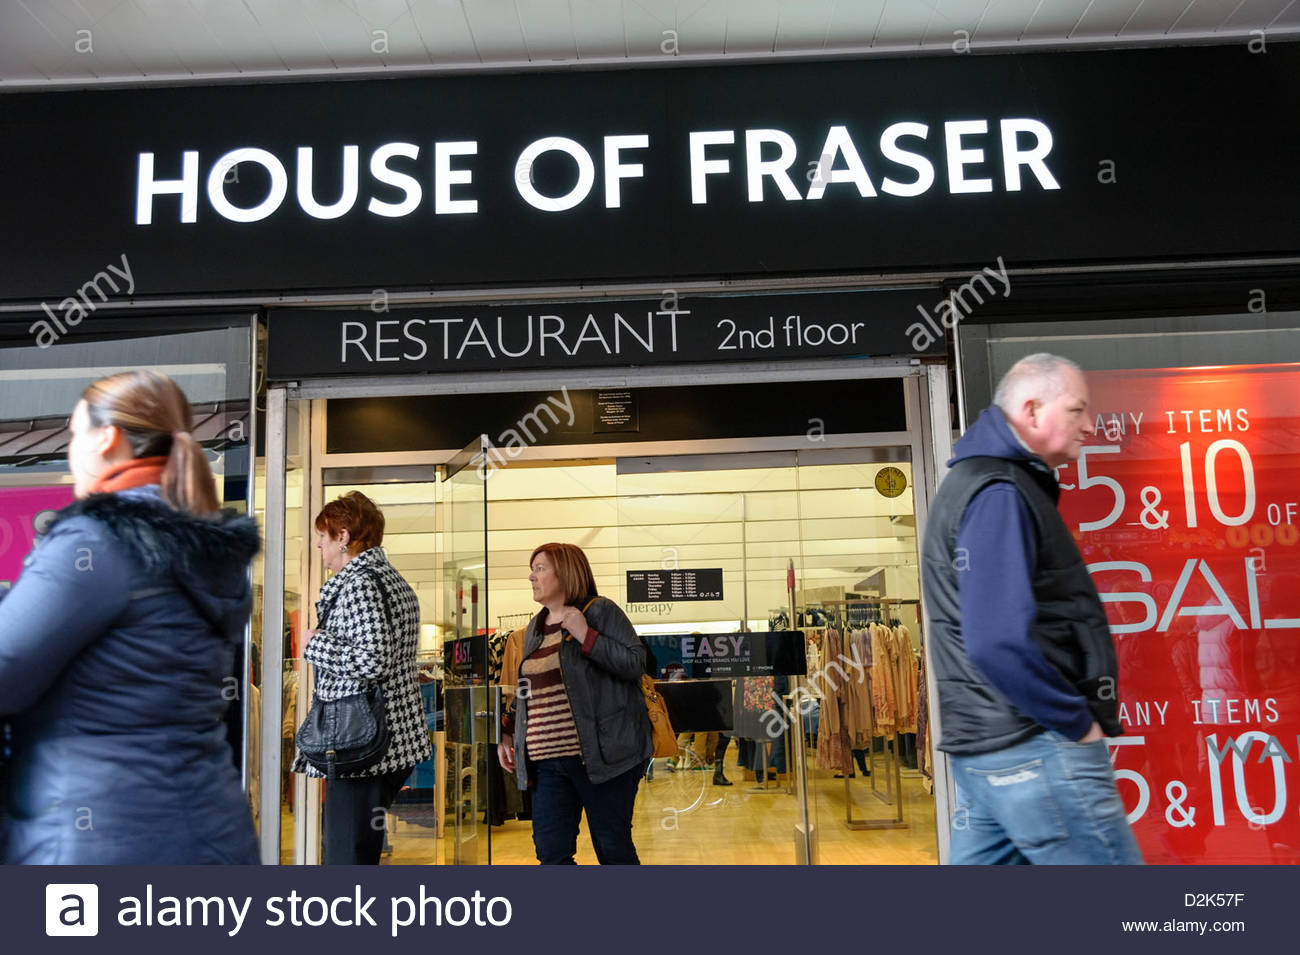 House of Fraser shop in Cwmbran, South Wales, UK. - Stock Image